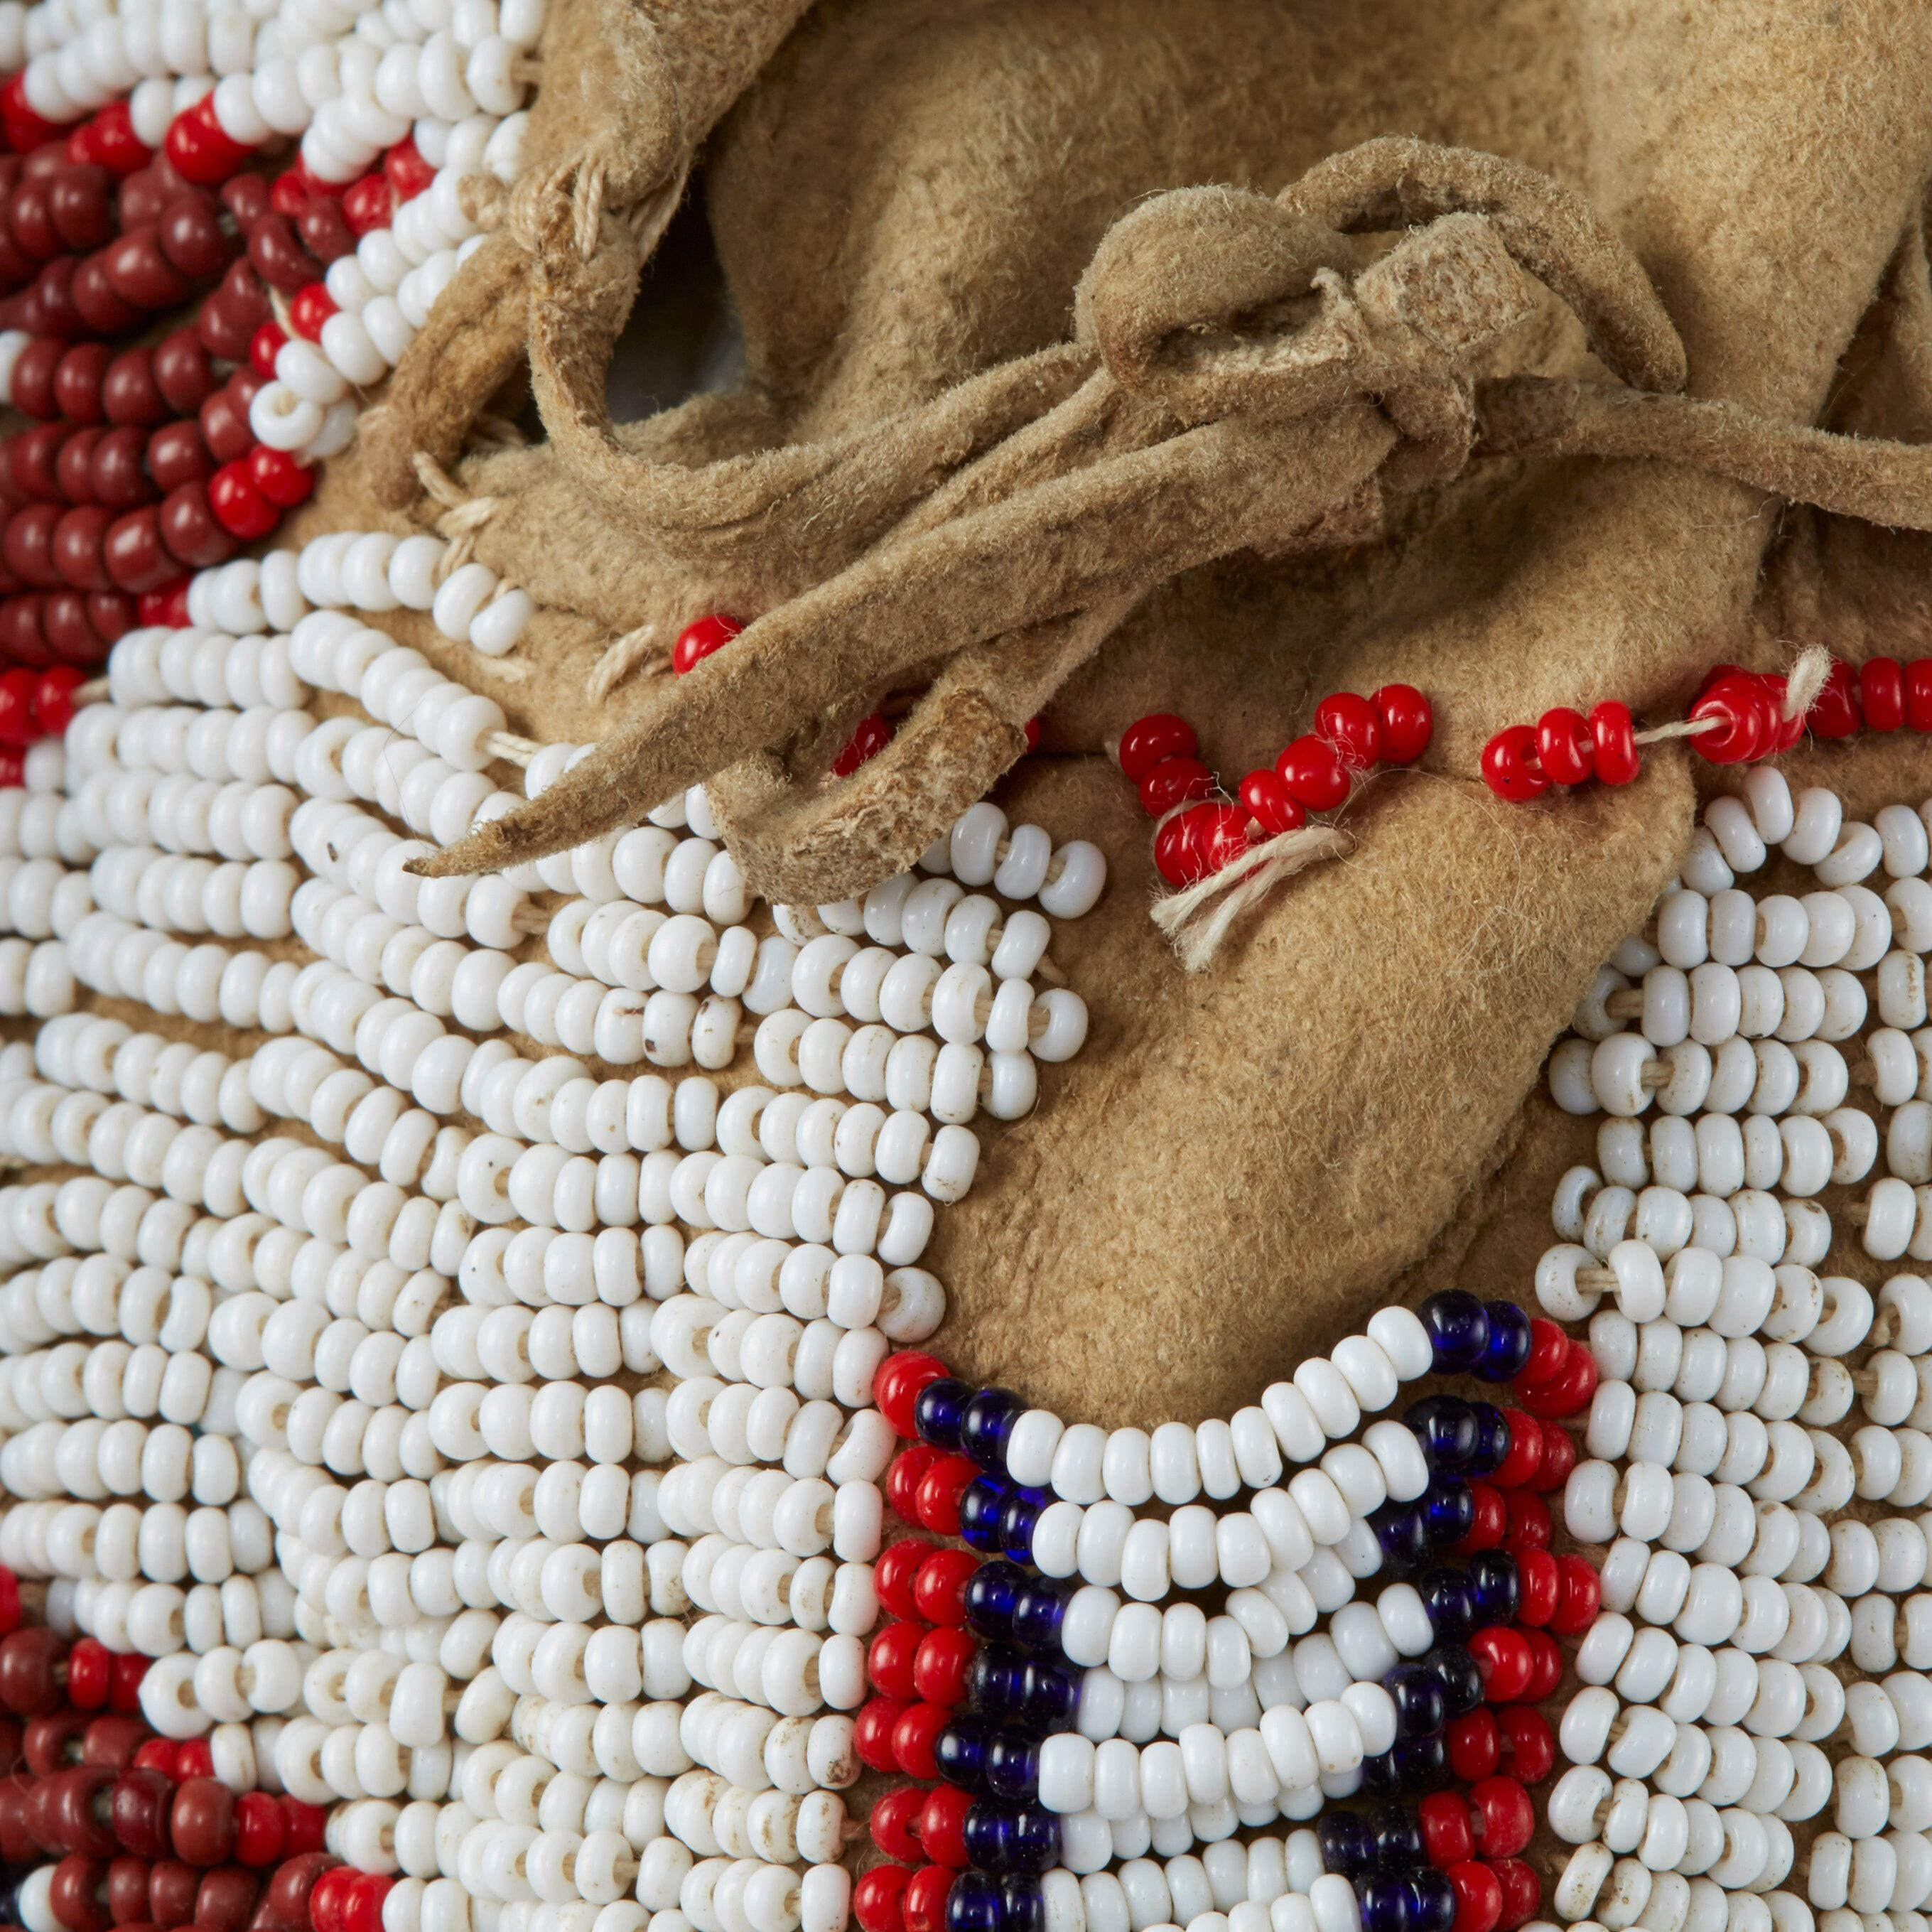 Lot 081: 7 Pairs Beaded Moccasins